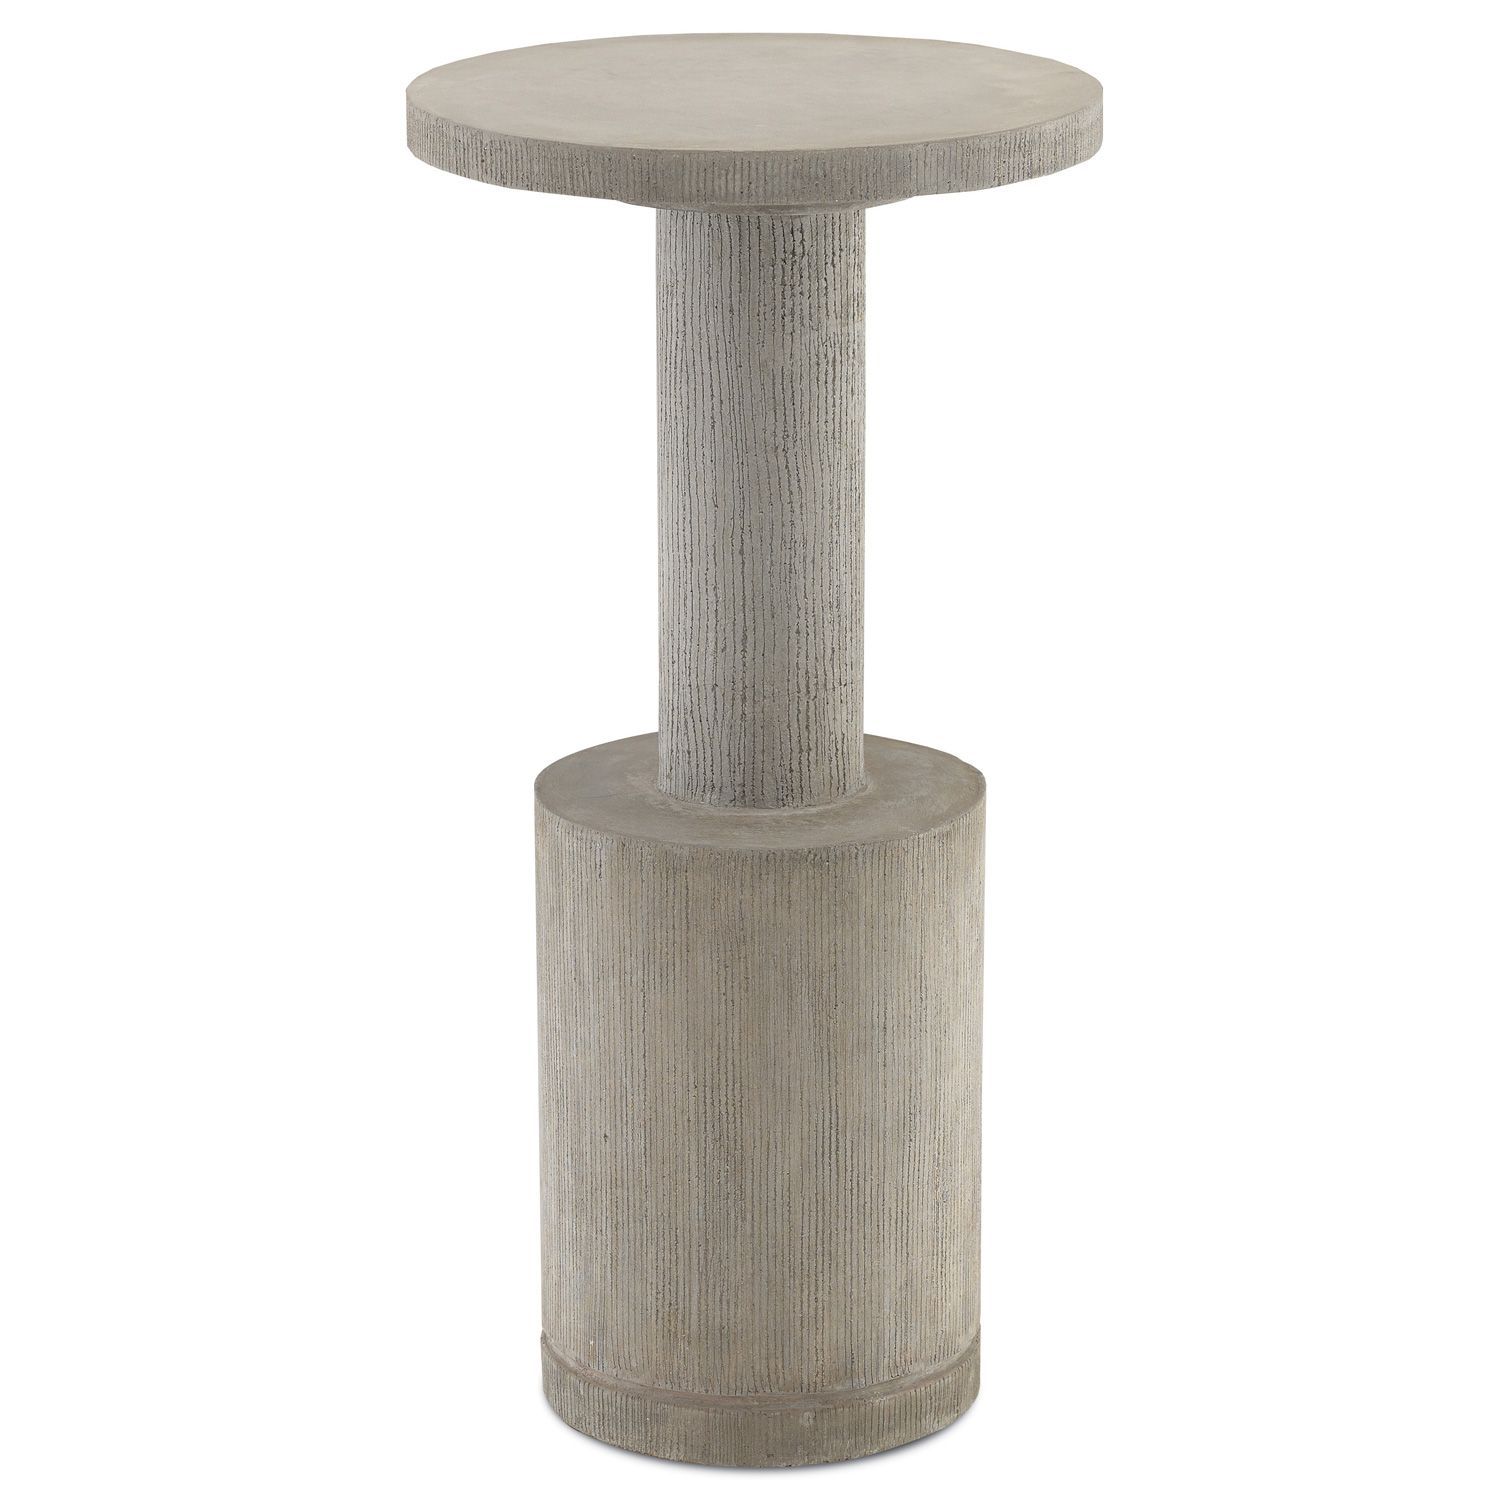 Abella Industrial Loft Grey Concrete Round Outdoor Side End Table Drink Table Polished Concrete Currey Company